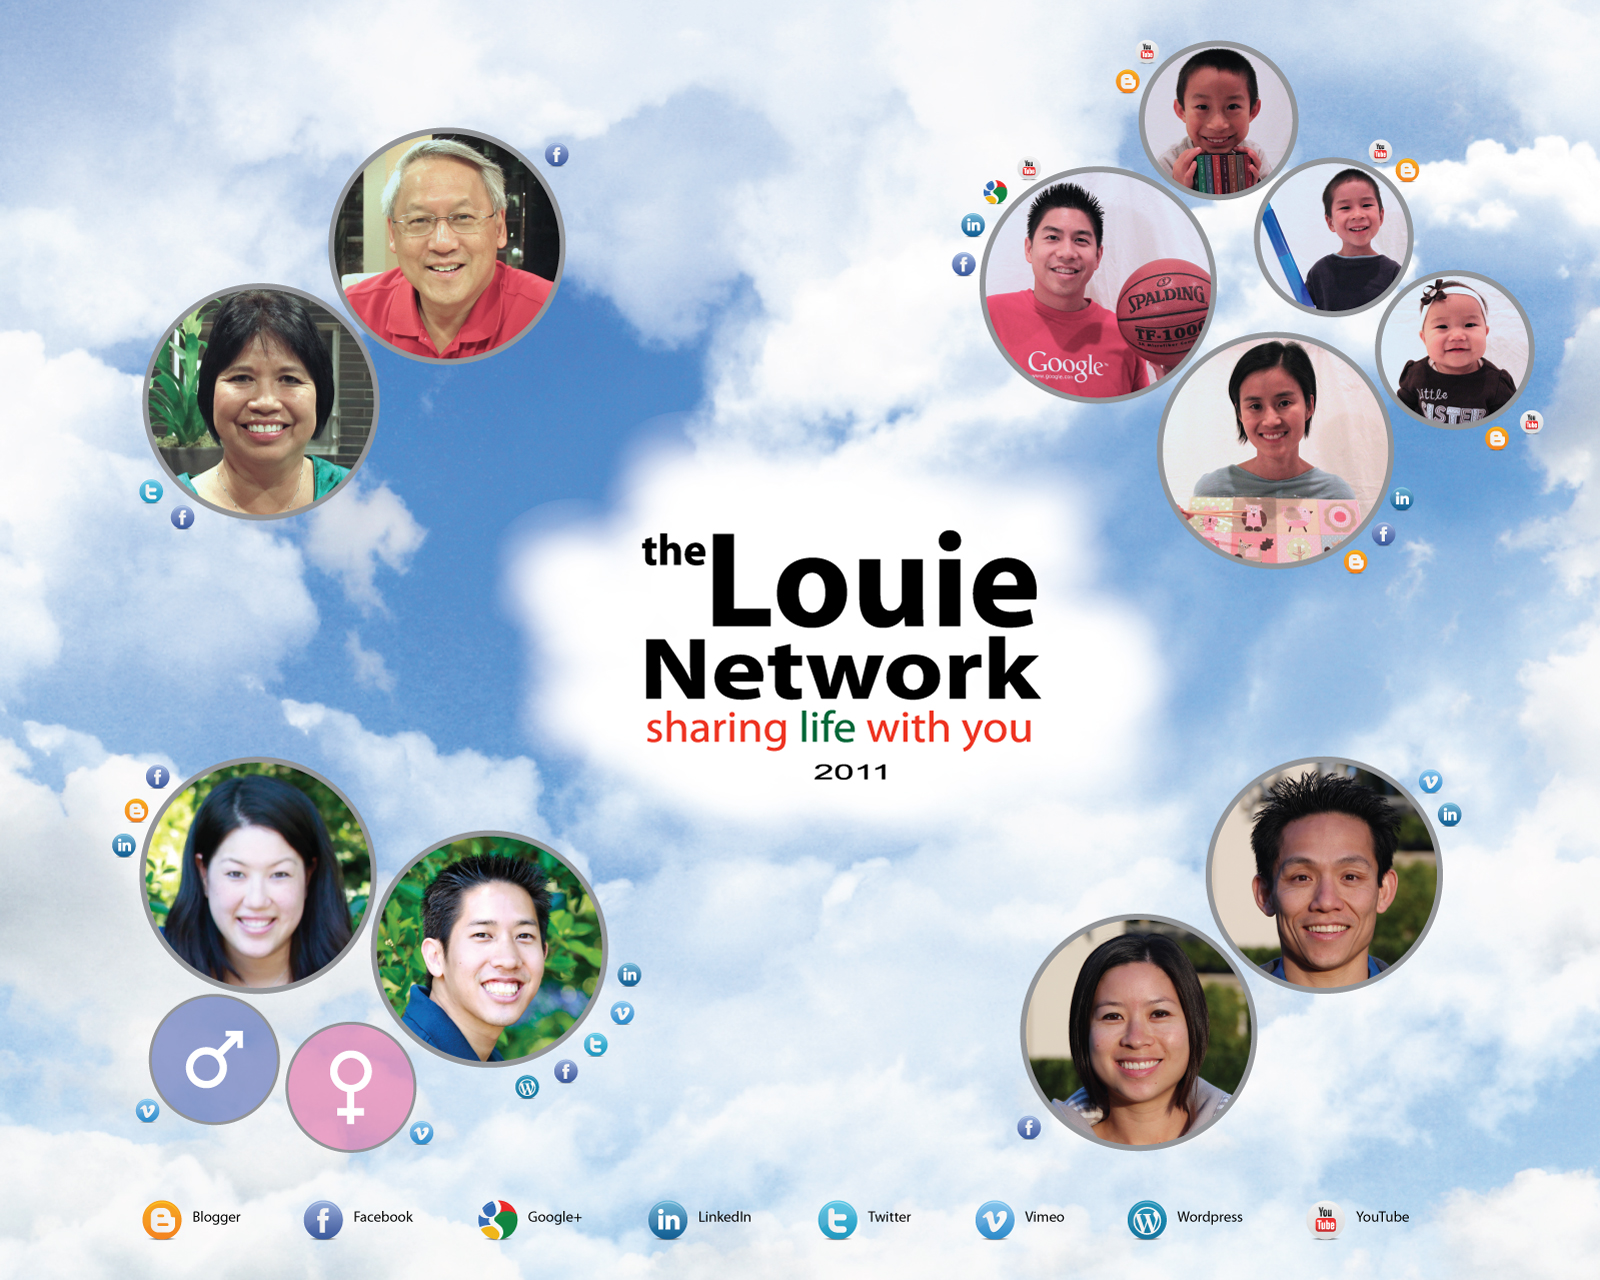 The Louie Network 2011